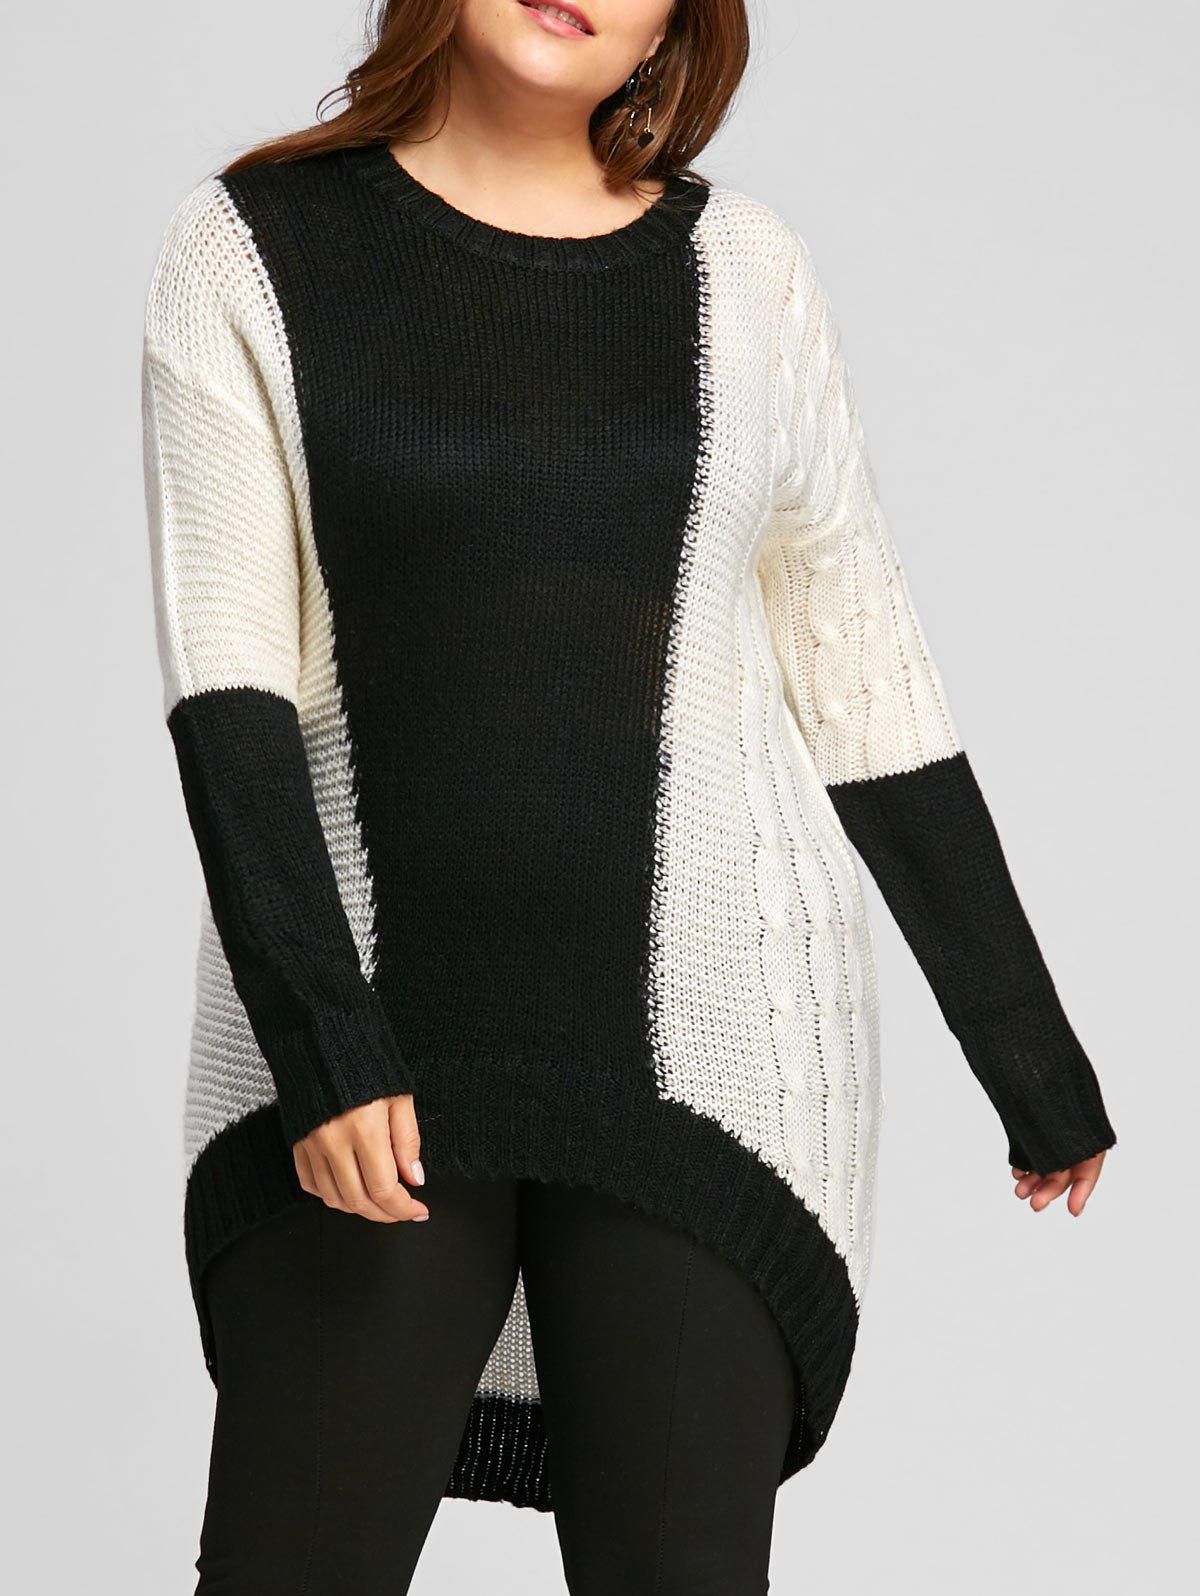 Color Block Plus Size Chunky Knit High Low Sweater knit high low sleeveless sweater